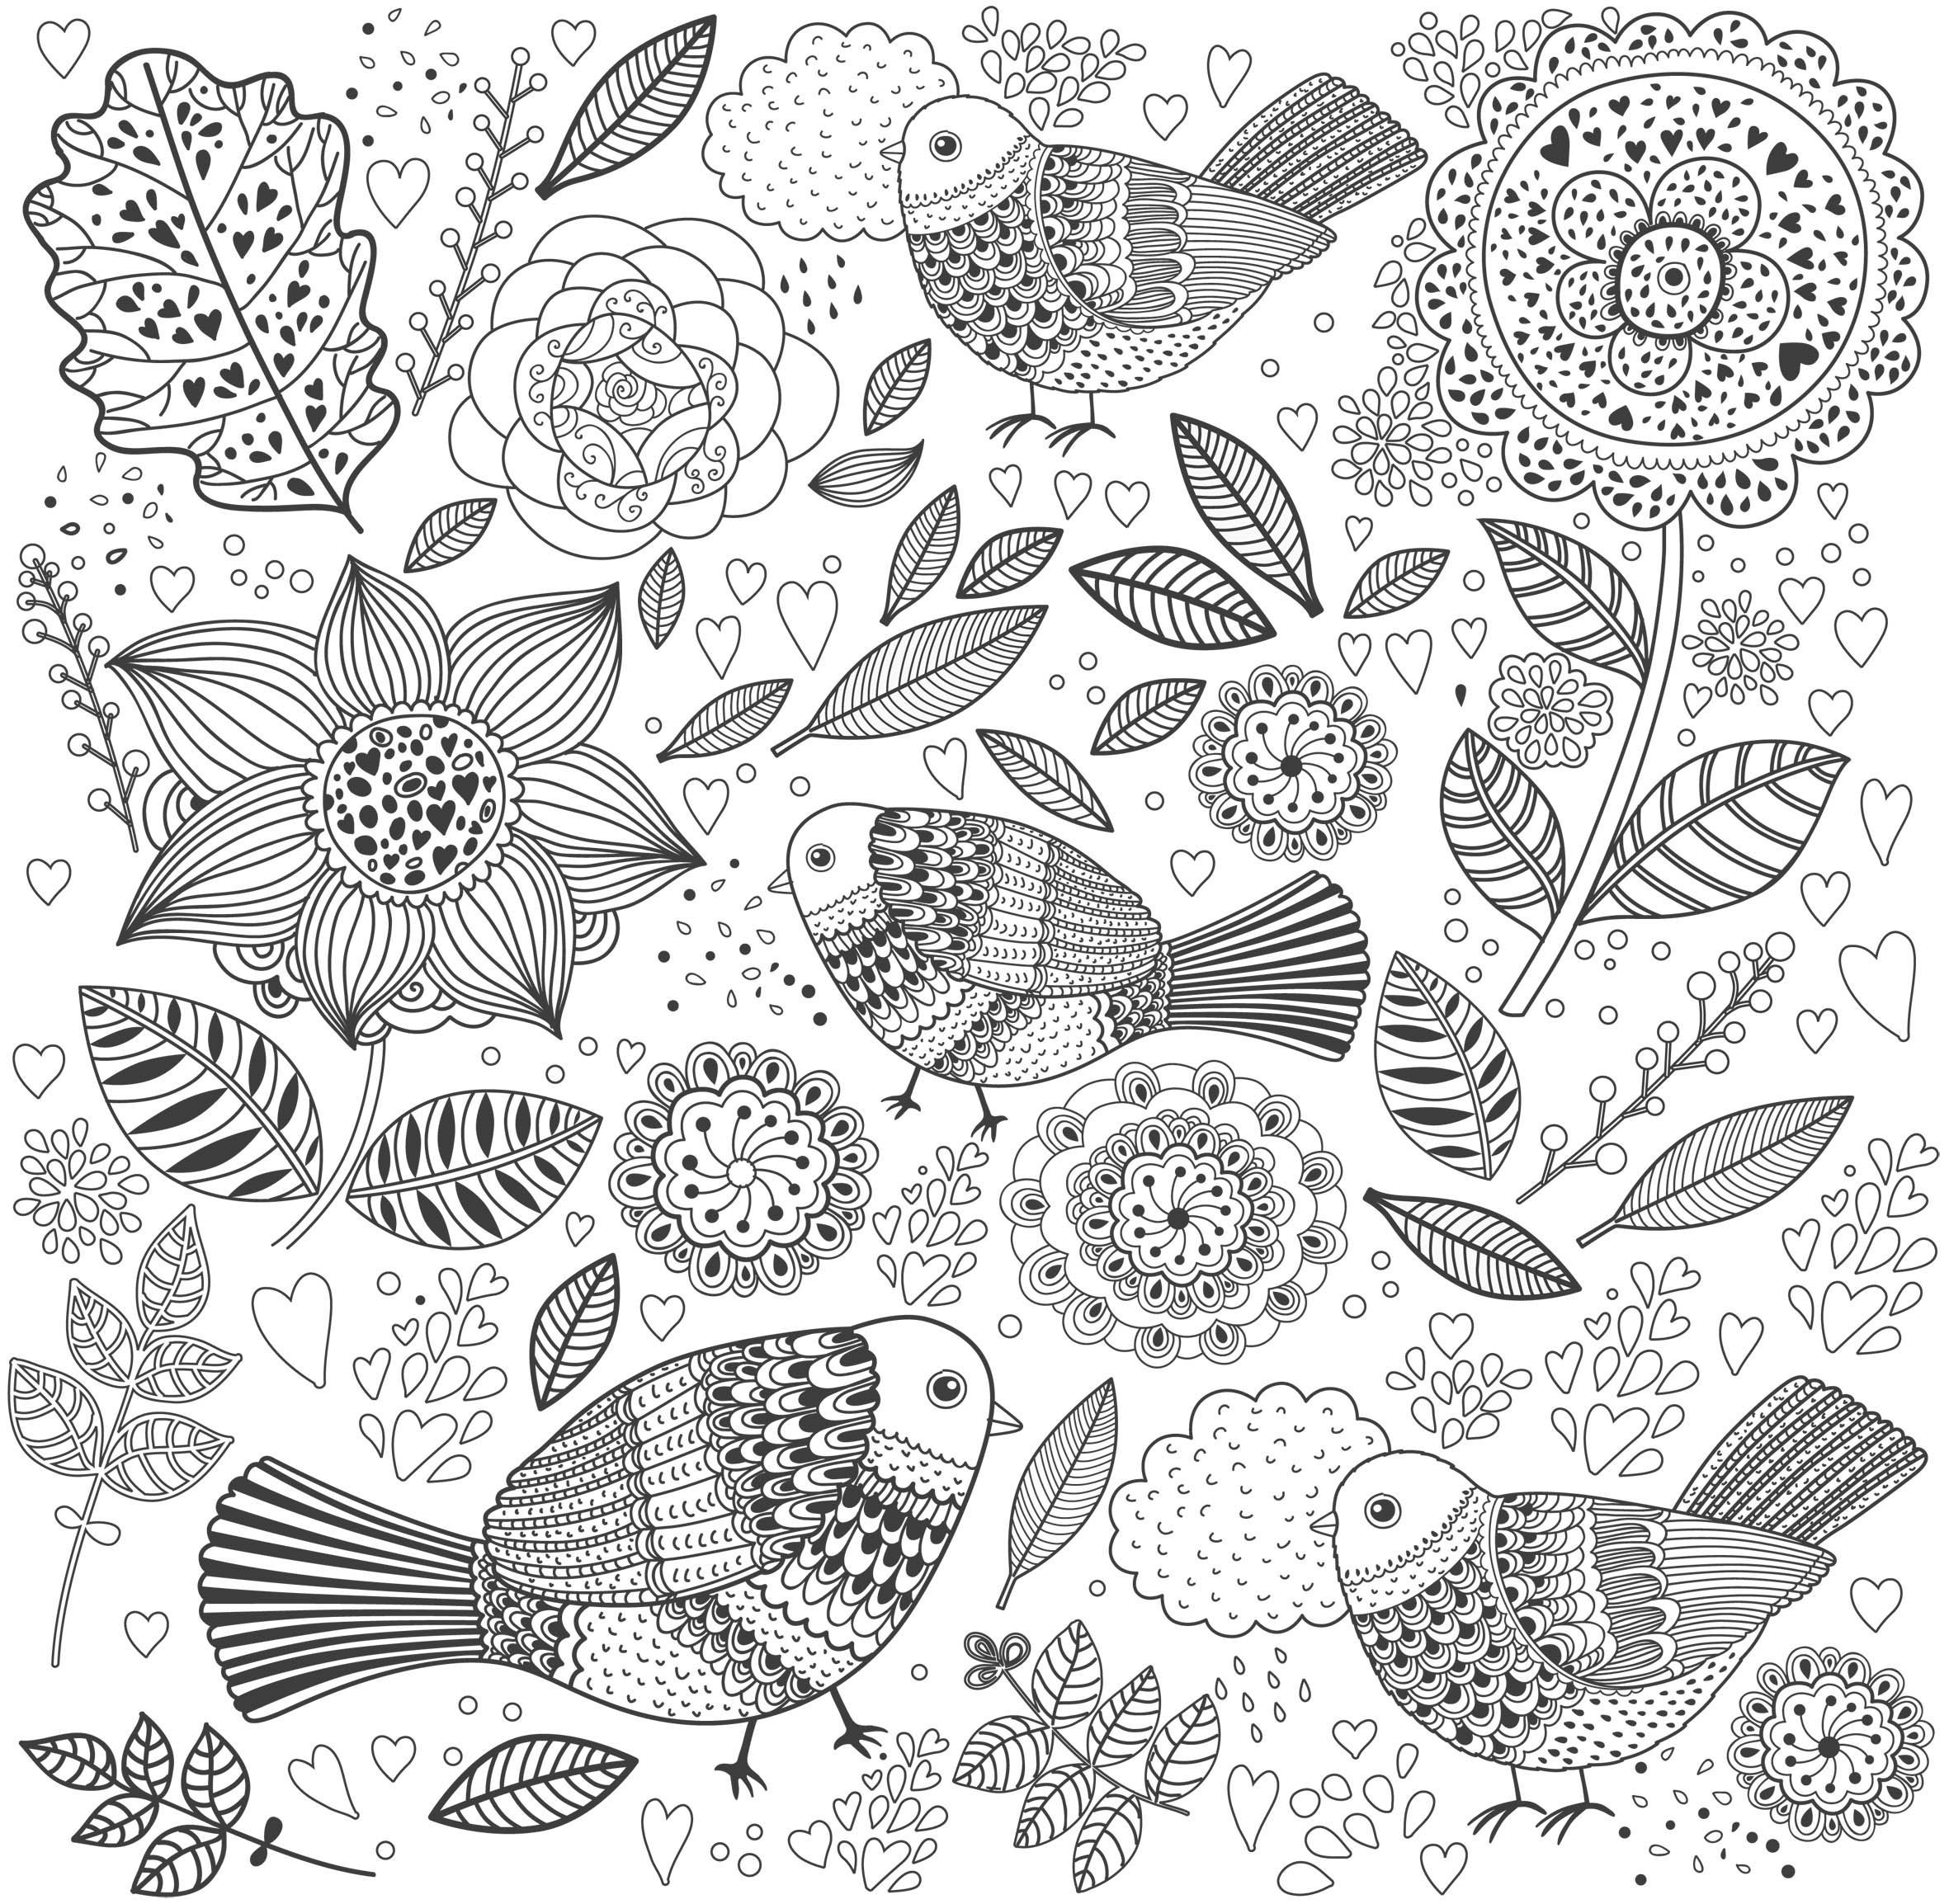 zen art coloring pages abstract flowers zentangle coloring page free printable art coloring zen pages